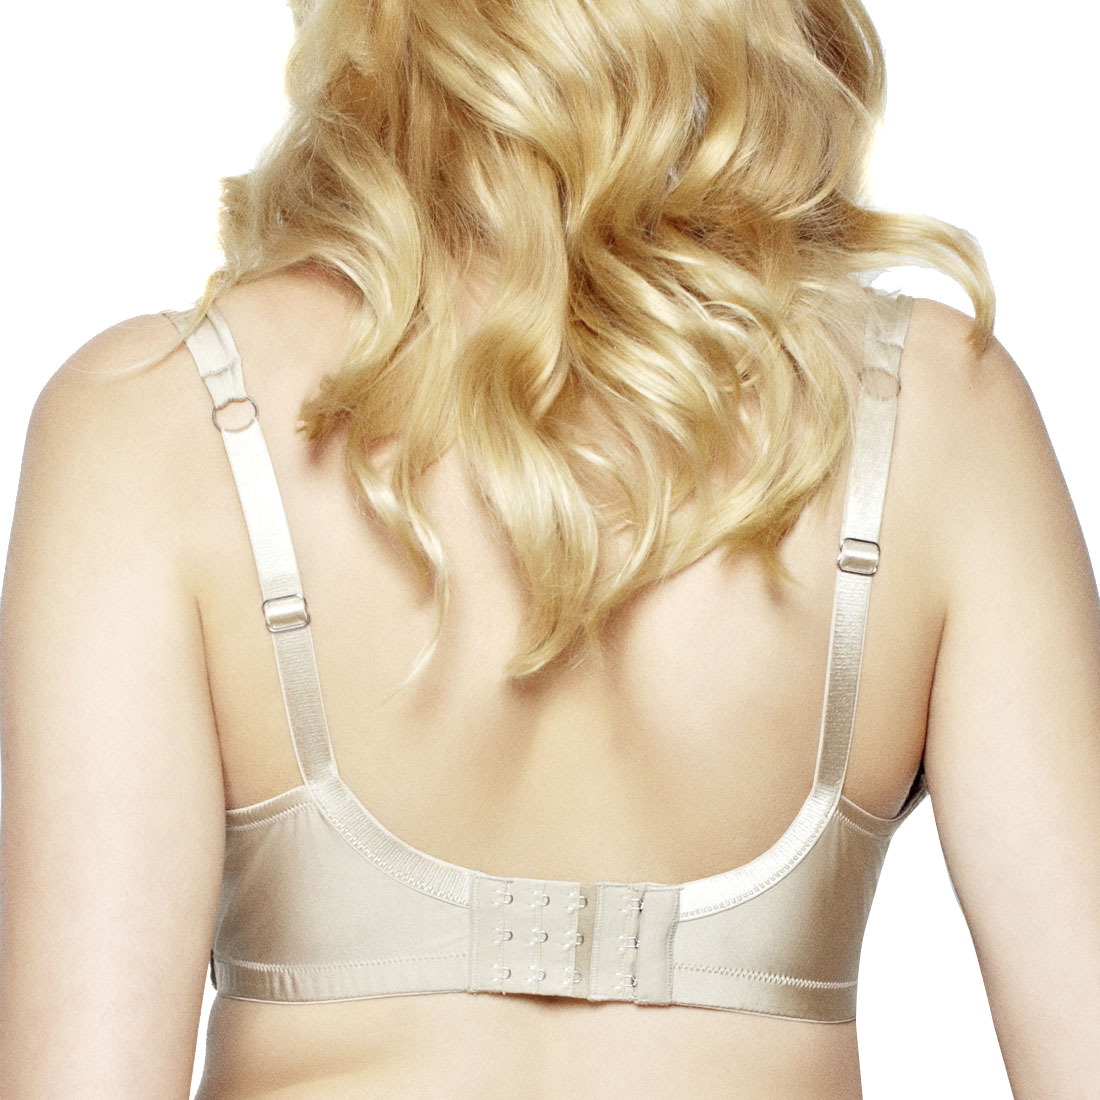 Frosted Almond Nursing Bra